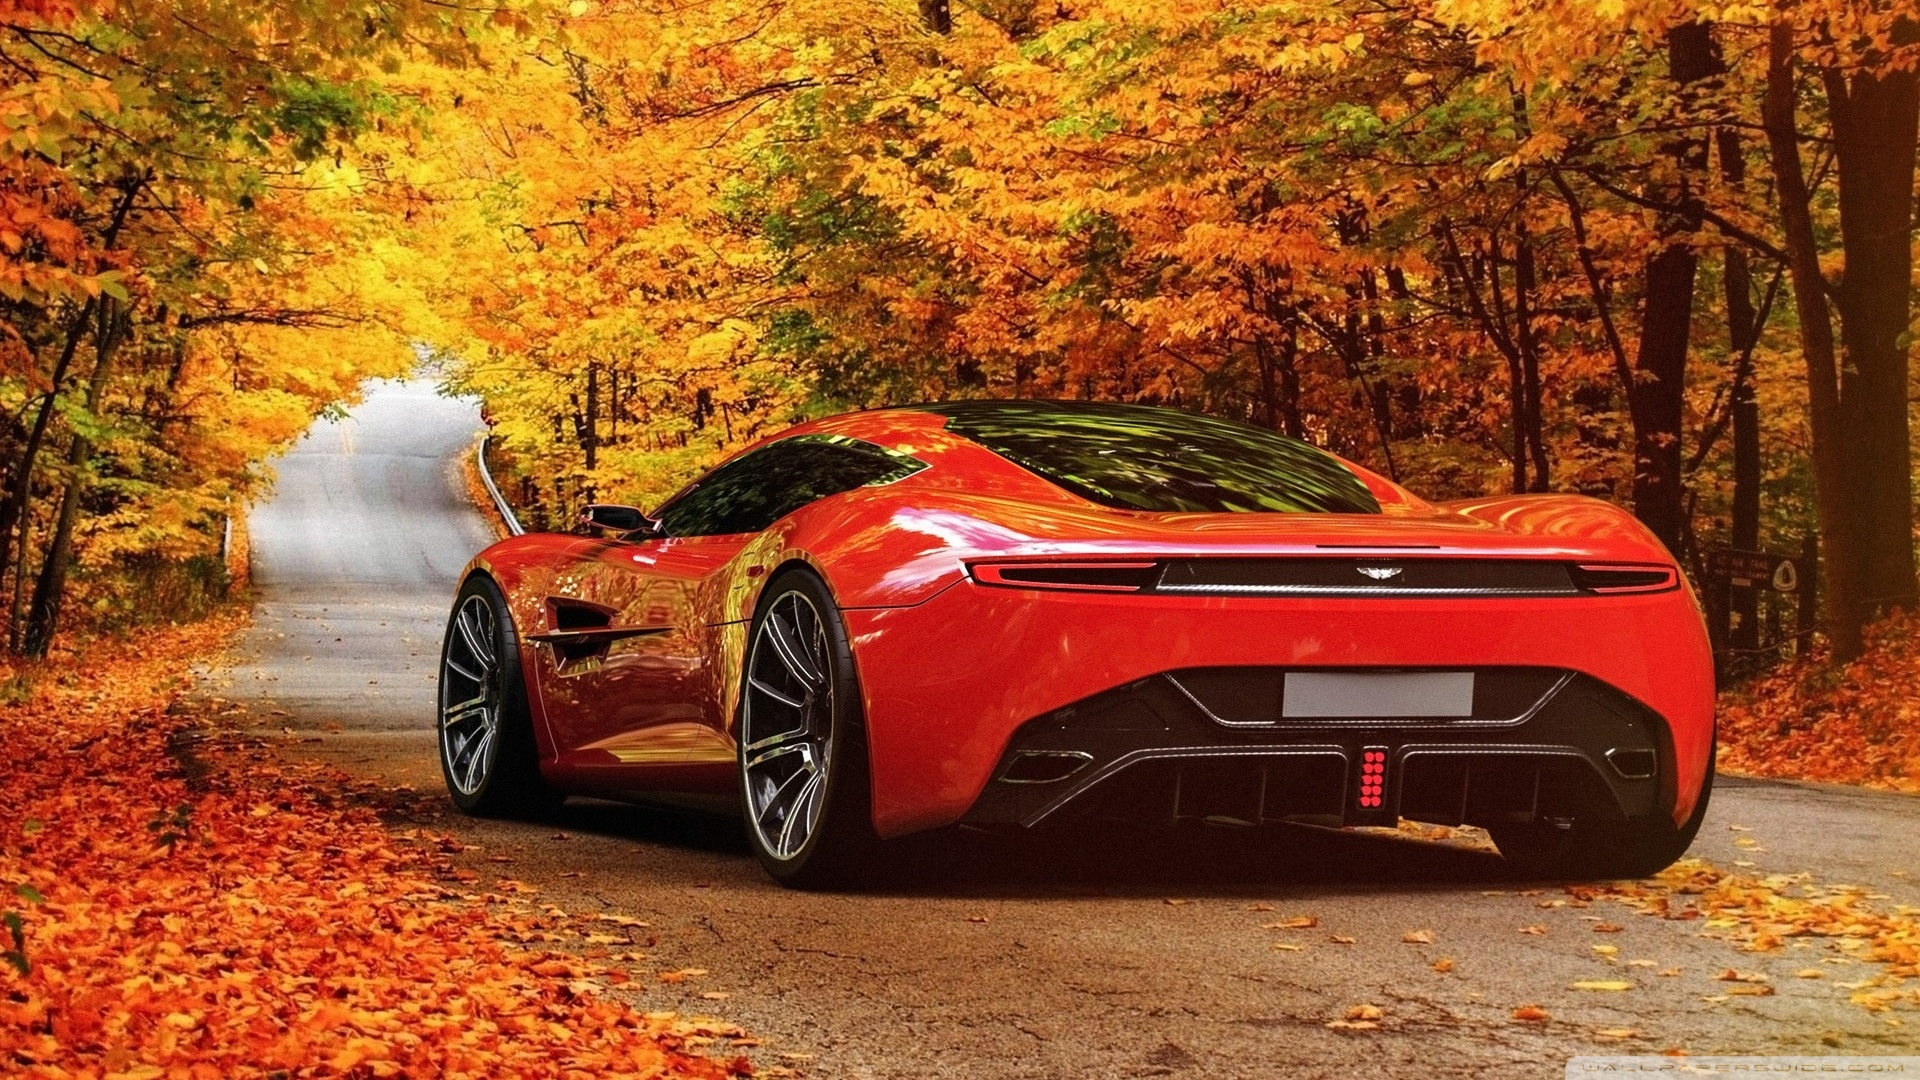 aston_martin_10-wallpaper-1920x1080